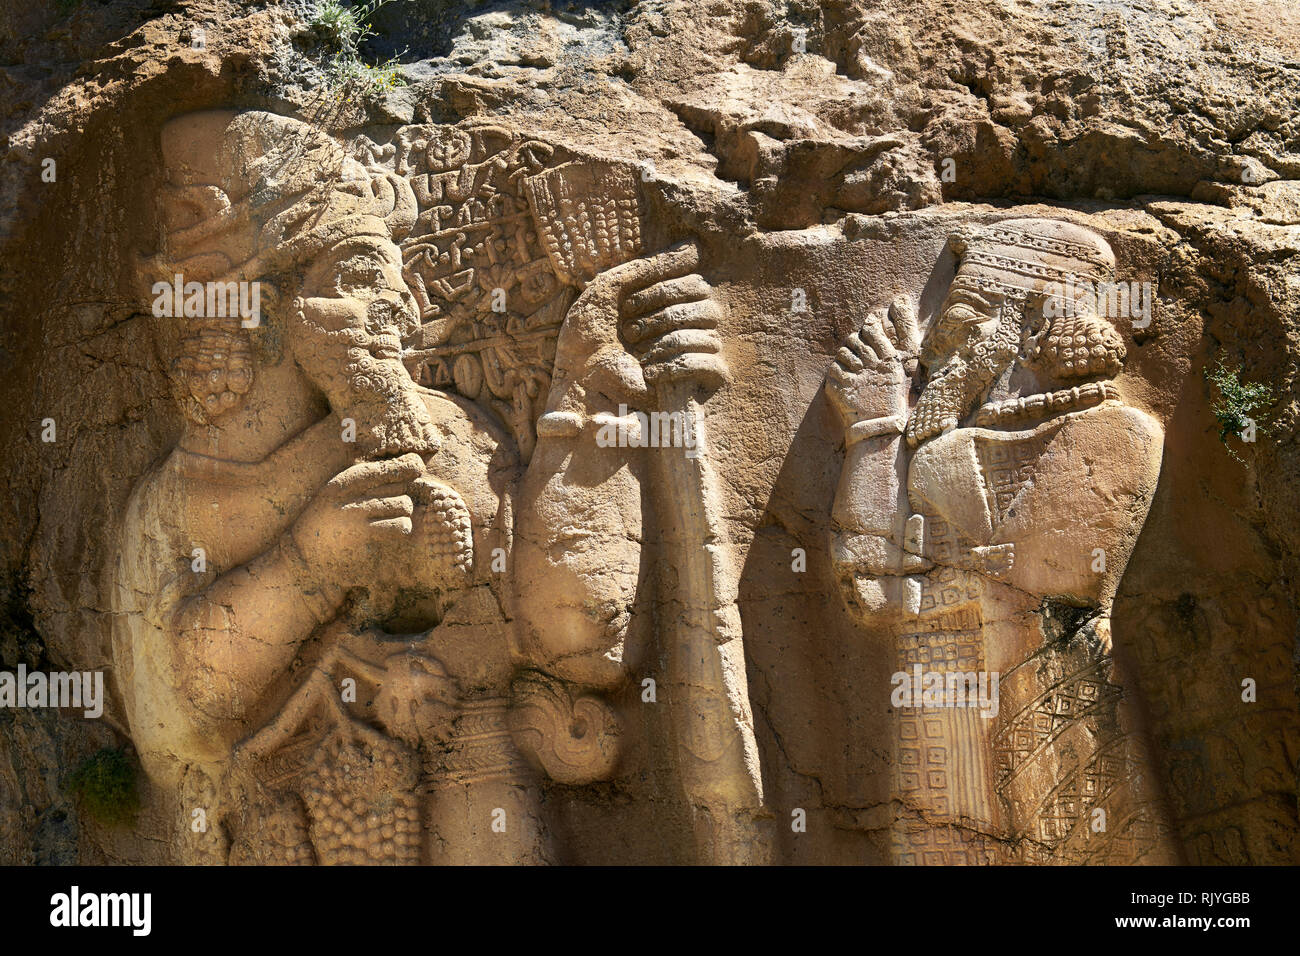 Picture of the Ivriz Hittite rock relief sculpture monument  dedicated to King Warpalawas in which he talks to Tarhundas the God of Thunder. The king  - Stock Image